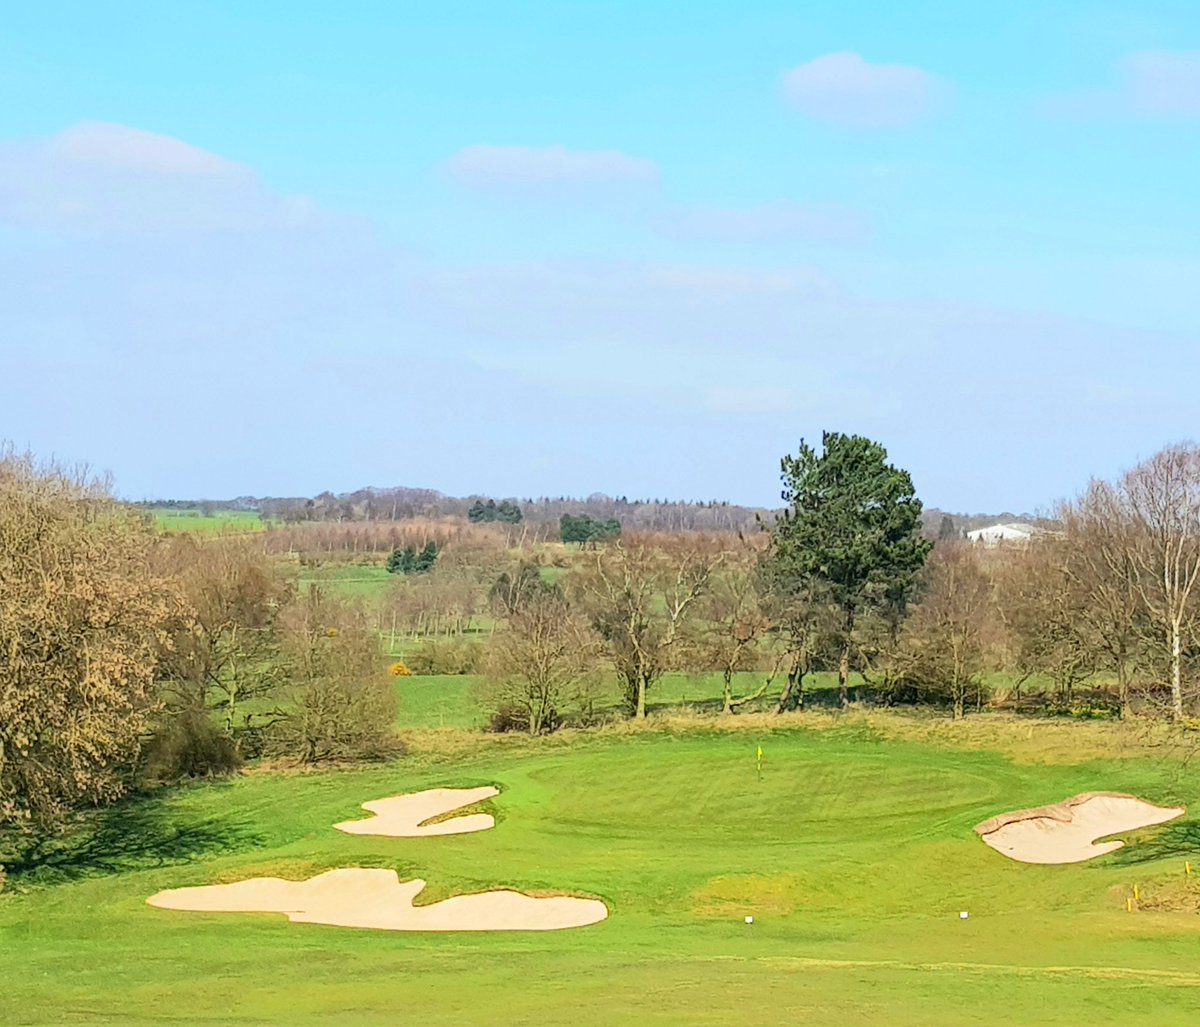 First time @AlwoodleyGC  - what a beauty. A fine place for an @EnglandGolf workout with @GrahamWalker18 and the team